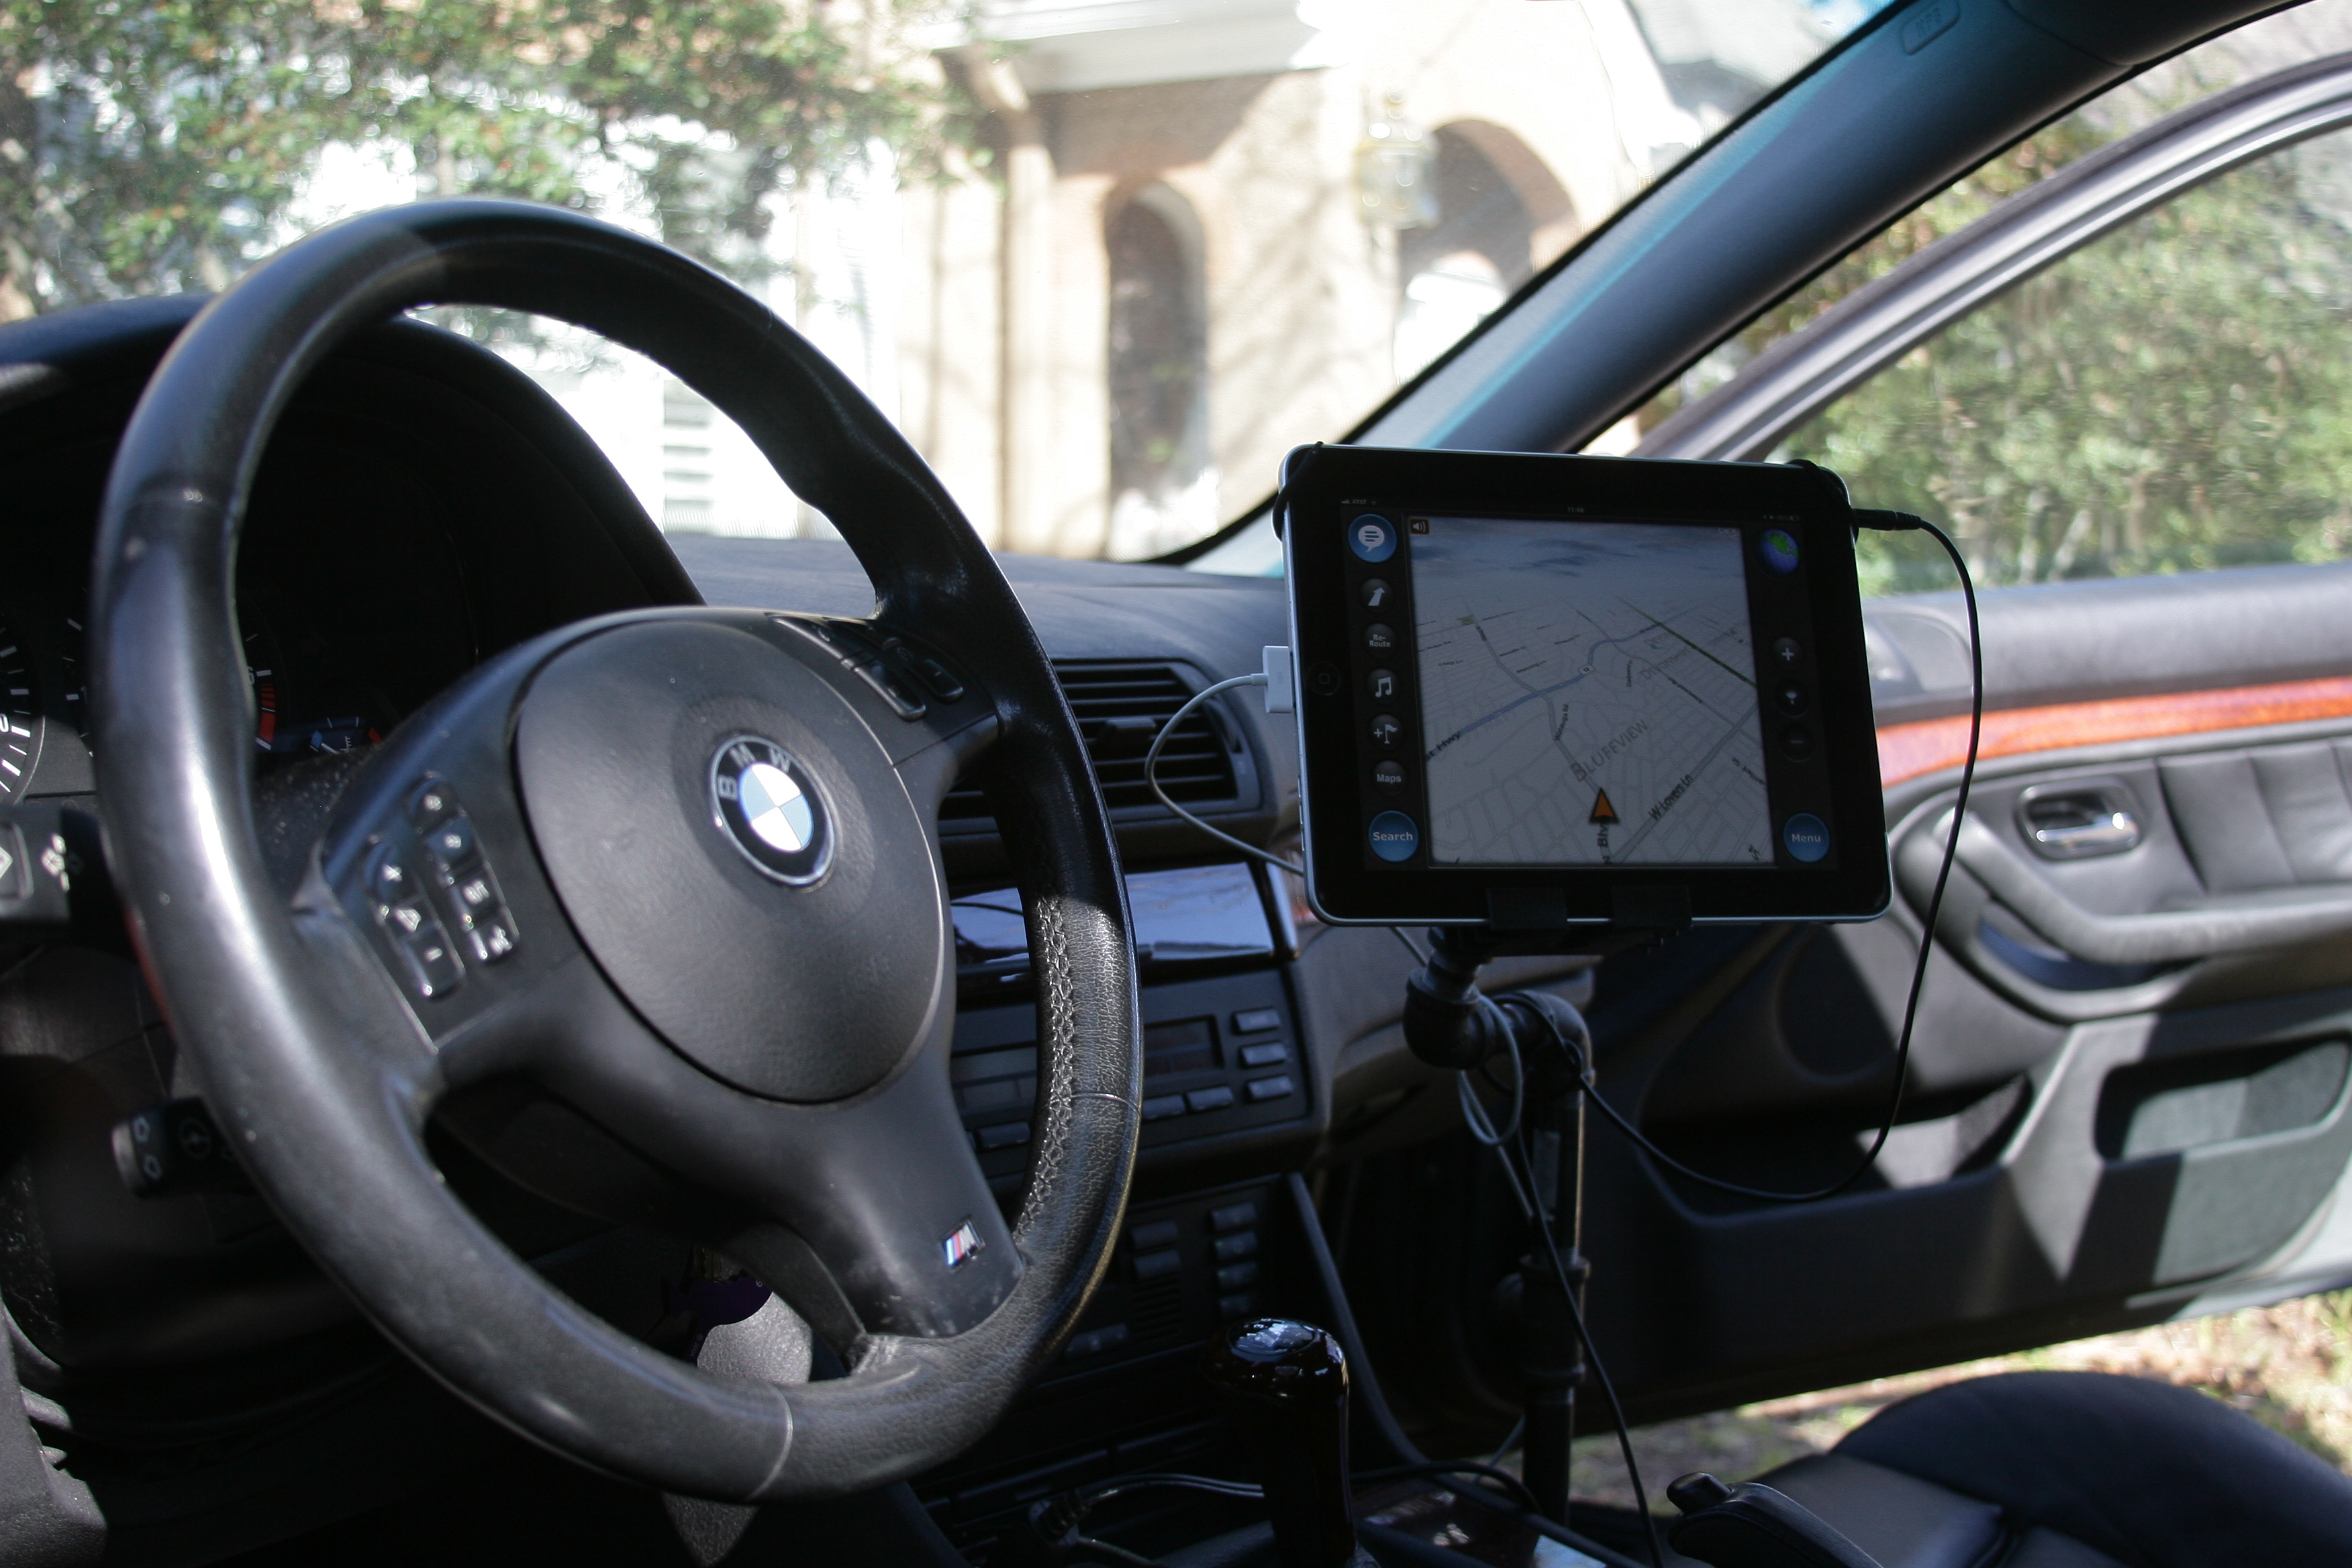 Hardware store sourced car iPad/ tablet mount for driver